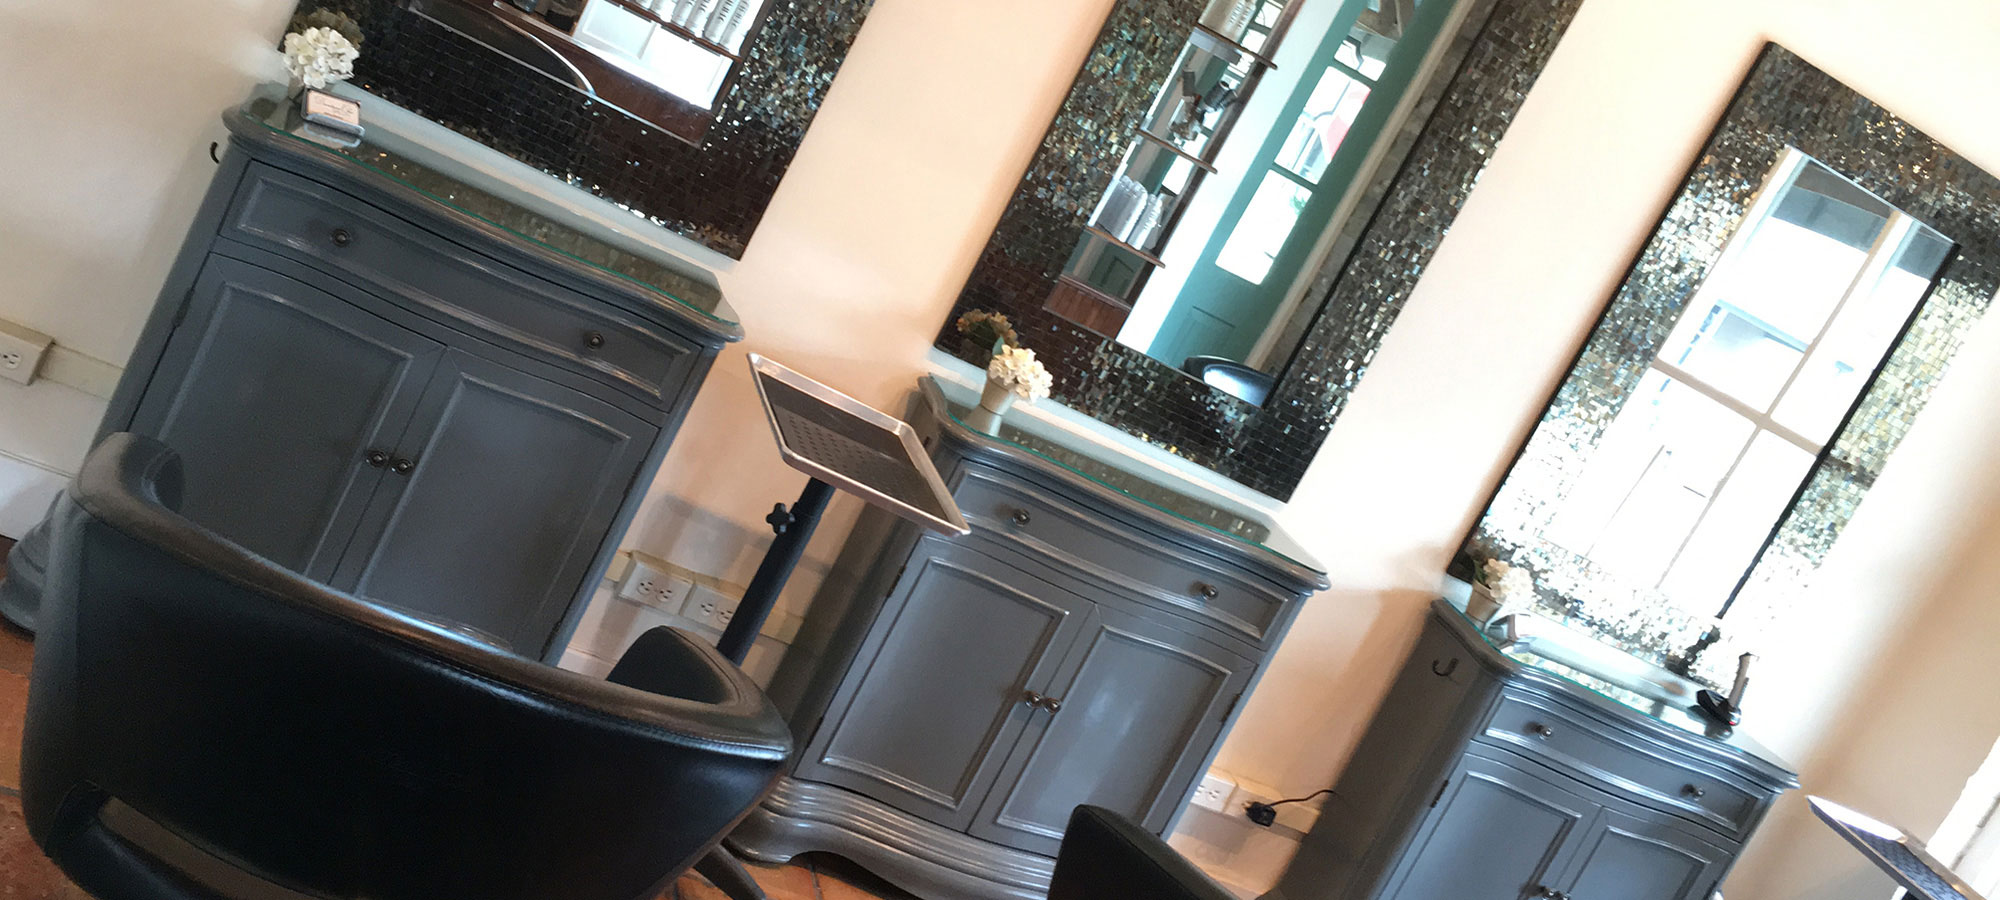 Our Beauty Salon is located in Historic Downtown Covington, Louisiana